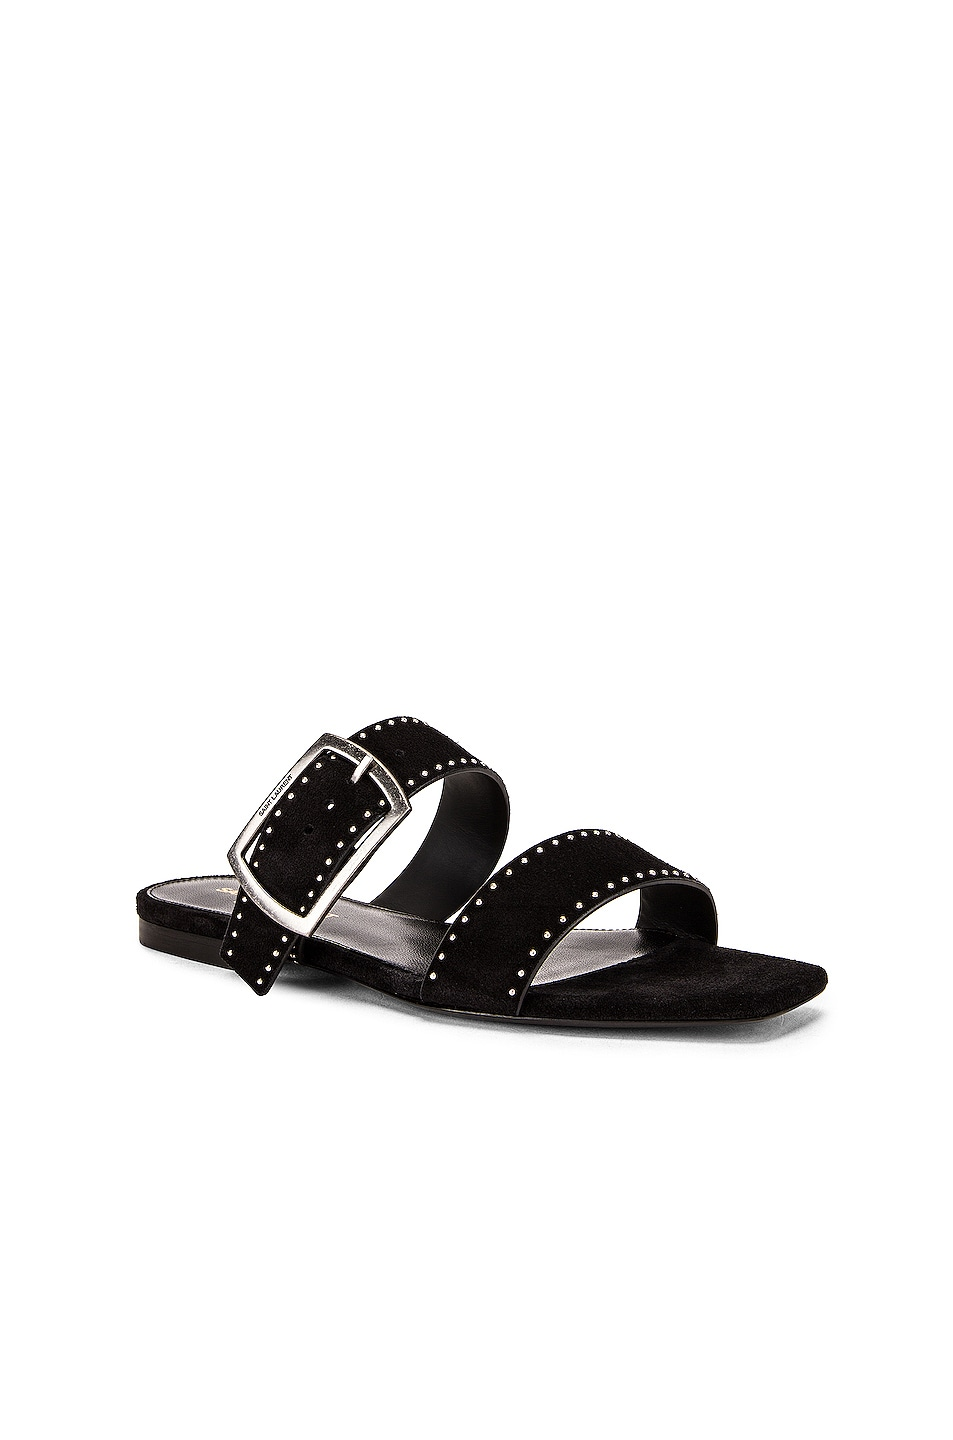 Image 2 of Saint Laurent Oak Buckle Sandals in Black